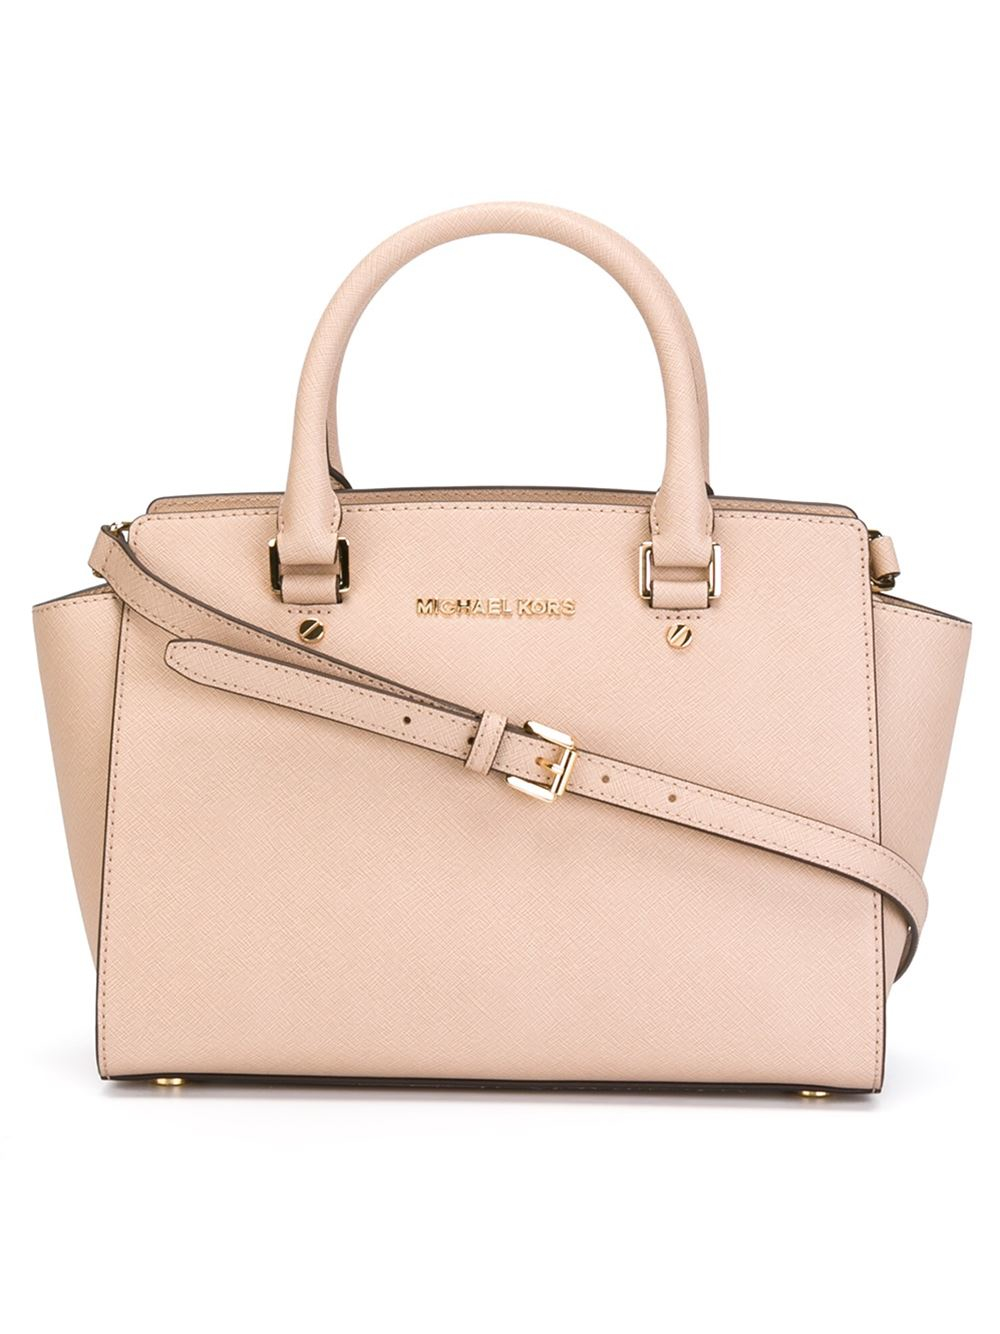 efb40c796a99 ... satchel navy fffa6 15484 norway michael michael kors medium selma tote  in natural lyst cb808 126f0 ...